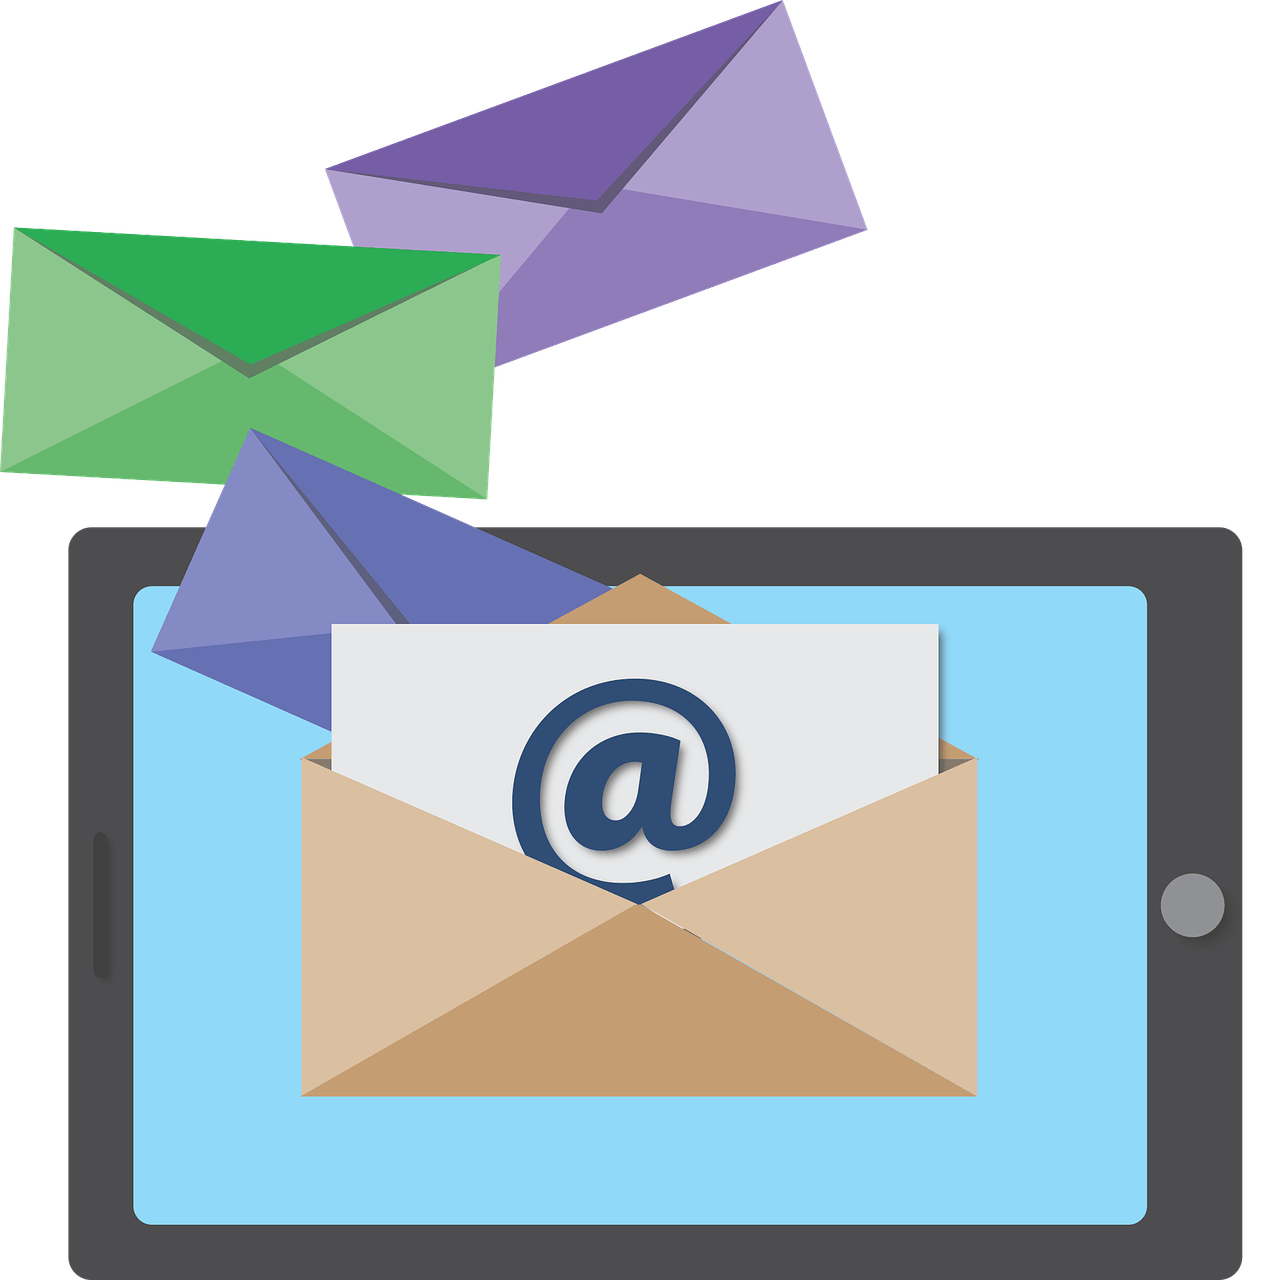 Download Webmail Marketing Client Email Privacy Free Clipart.